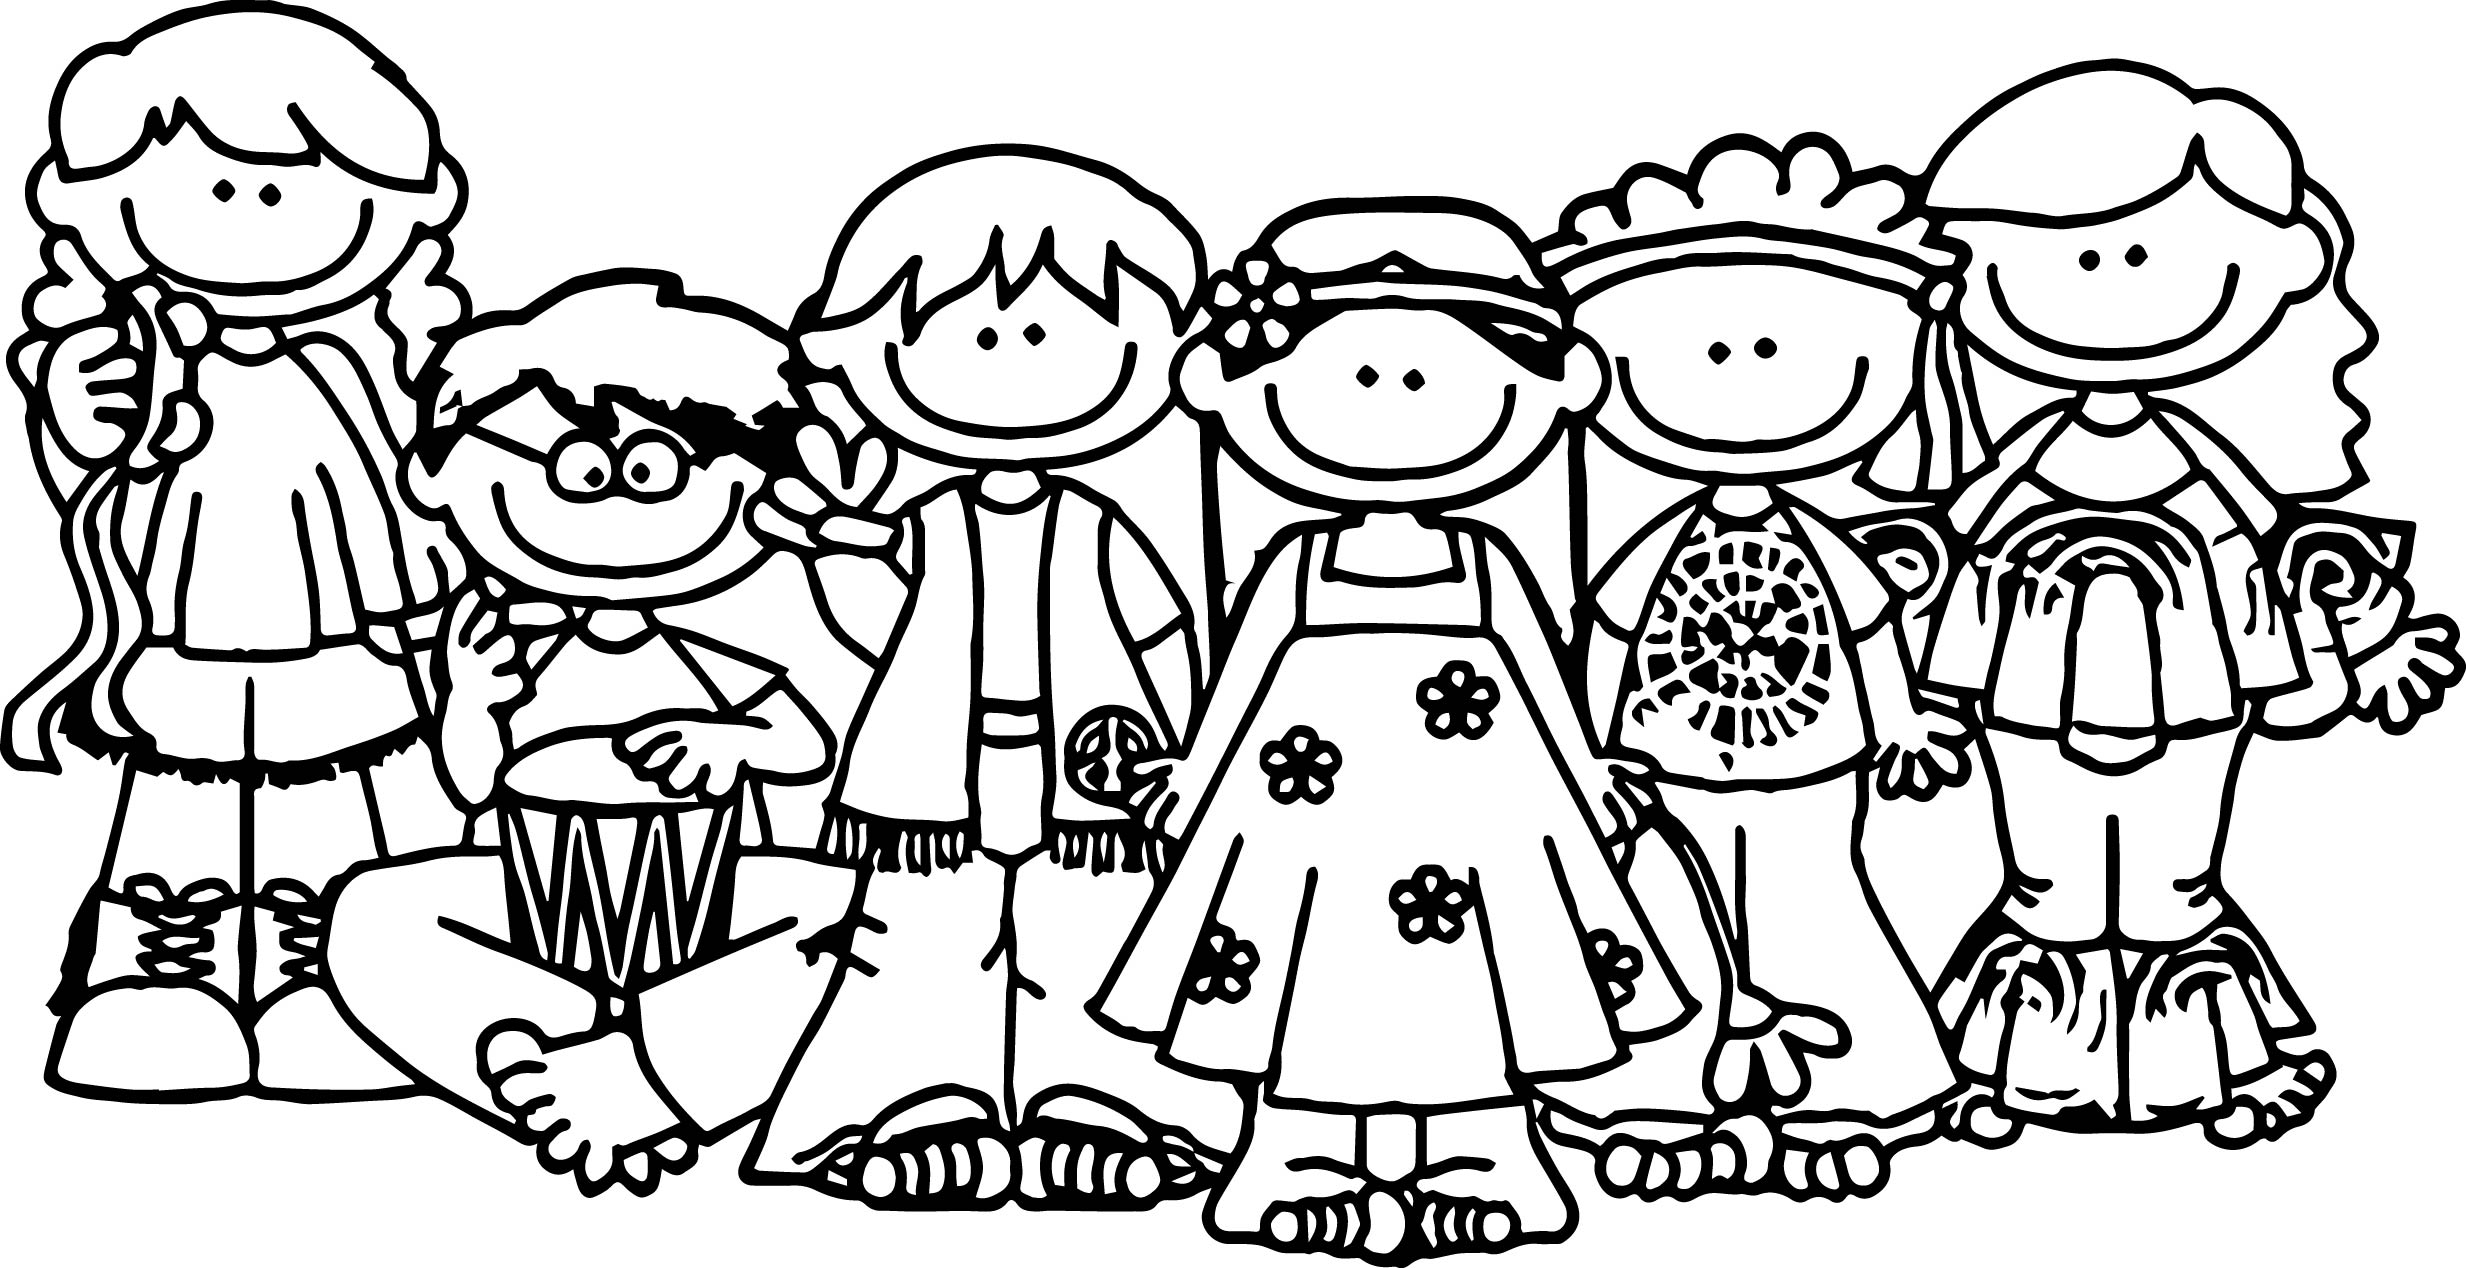 Group Of People Coloring Pages For Kids